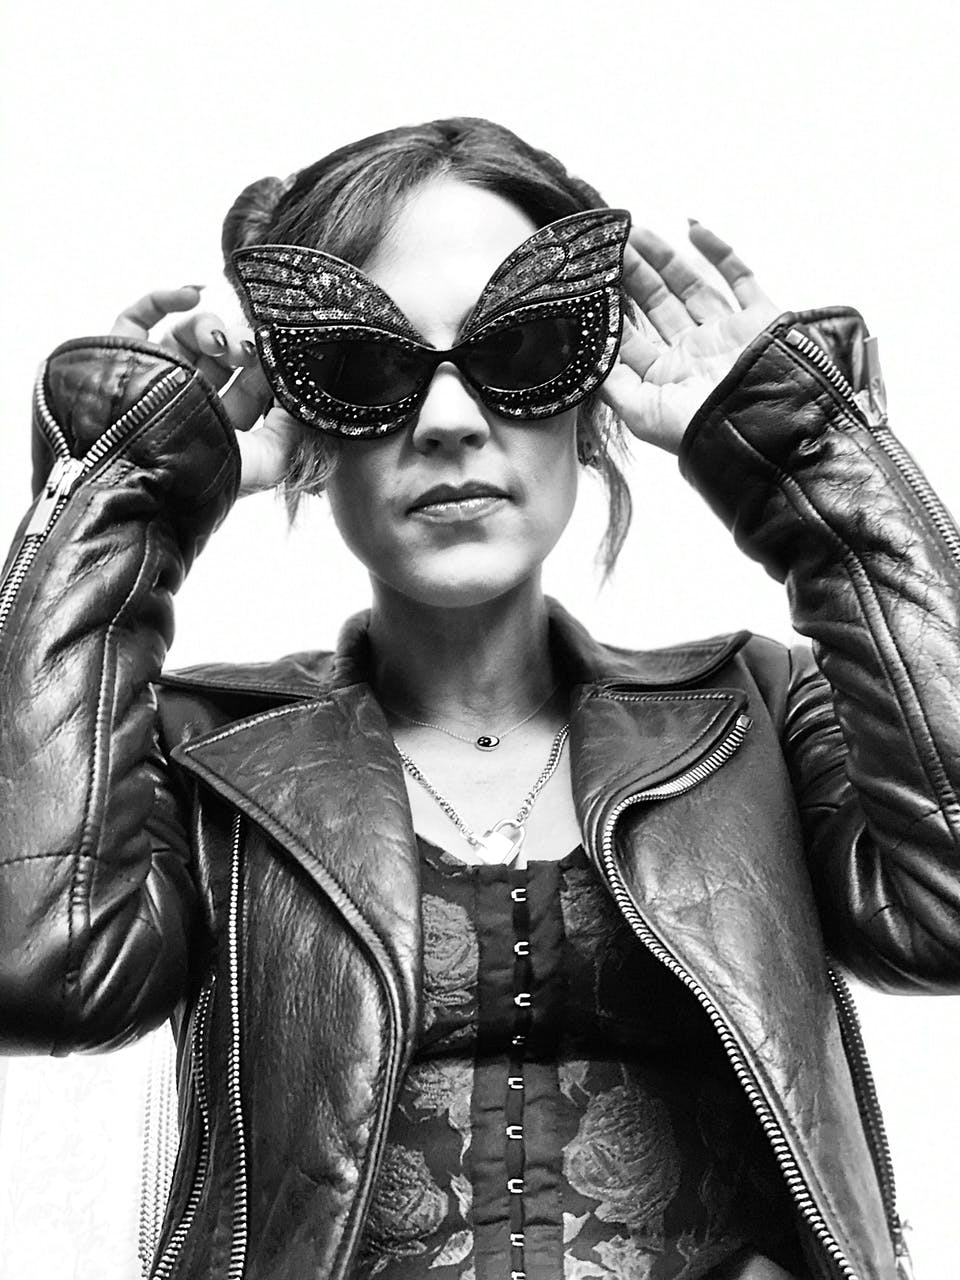 Amanda Shires with special guests Steve Forbert & L.A. Edwards